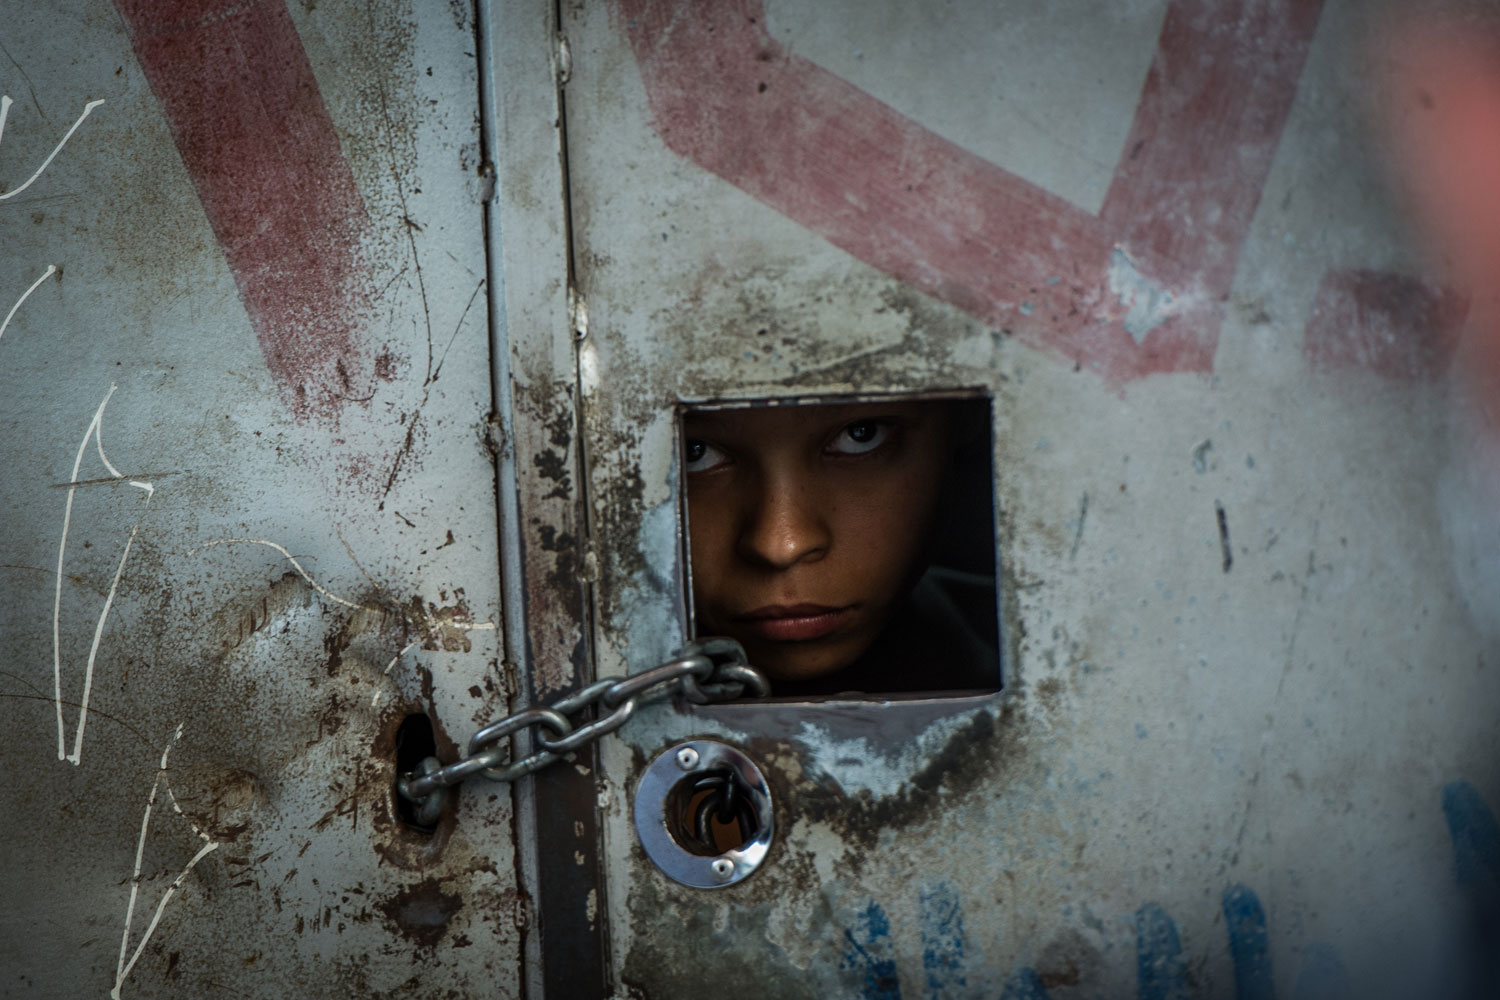 February 9, 2012. A resident looks outside from a peephole at the entrance of an ilegally occupied building before being evicted in downtown Sao Paulo.